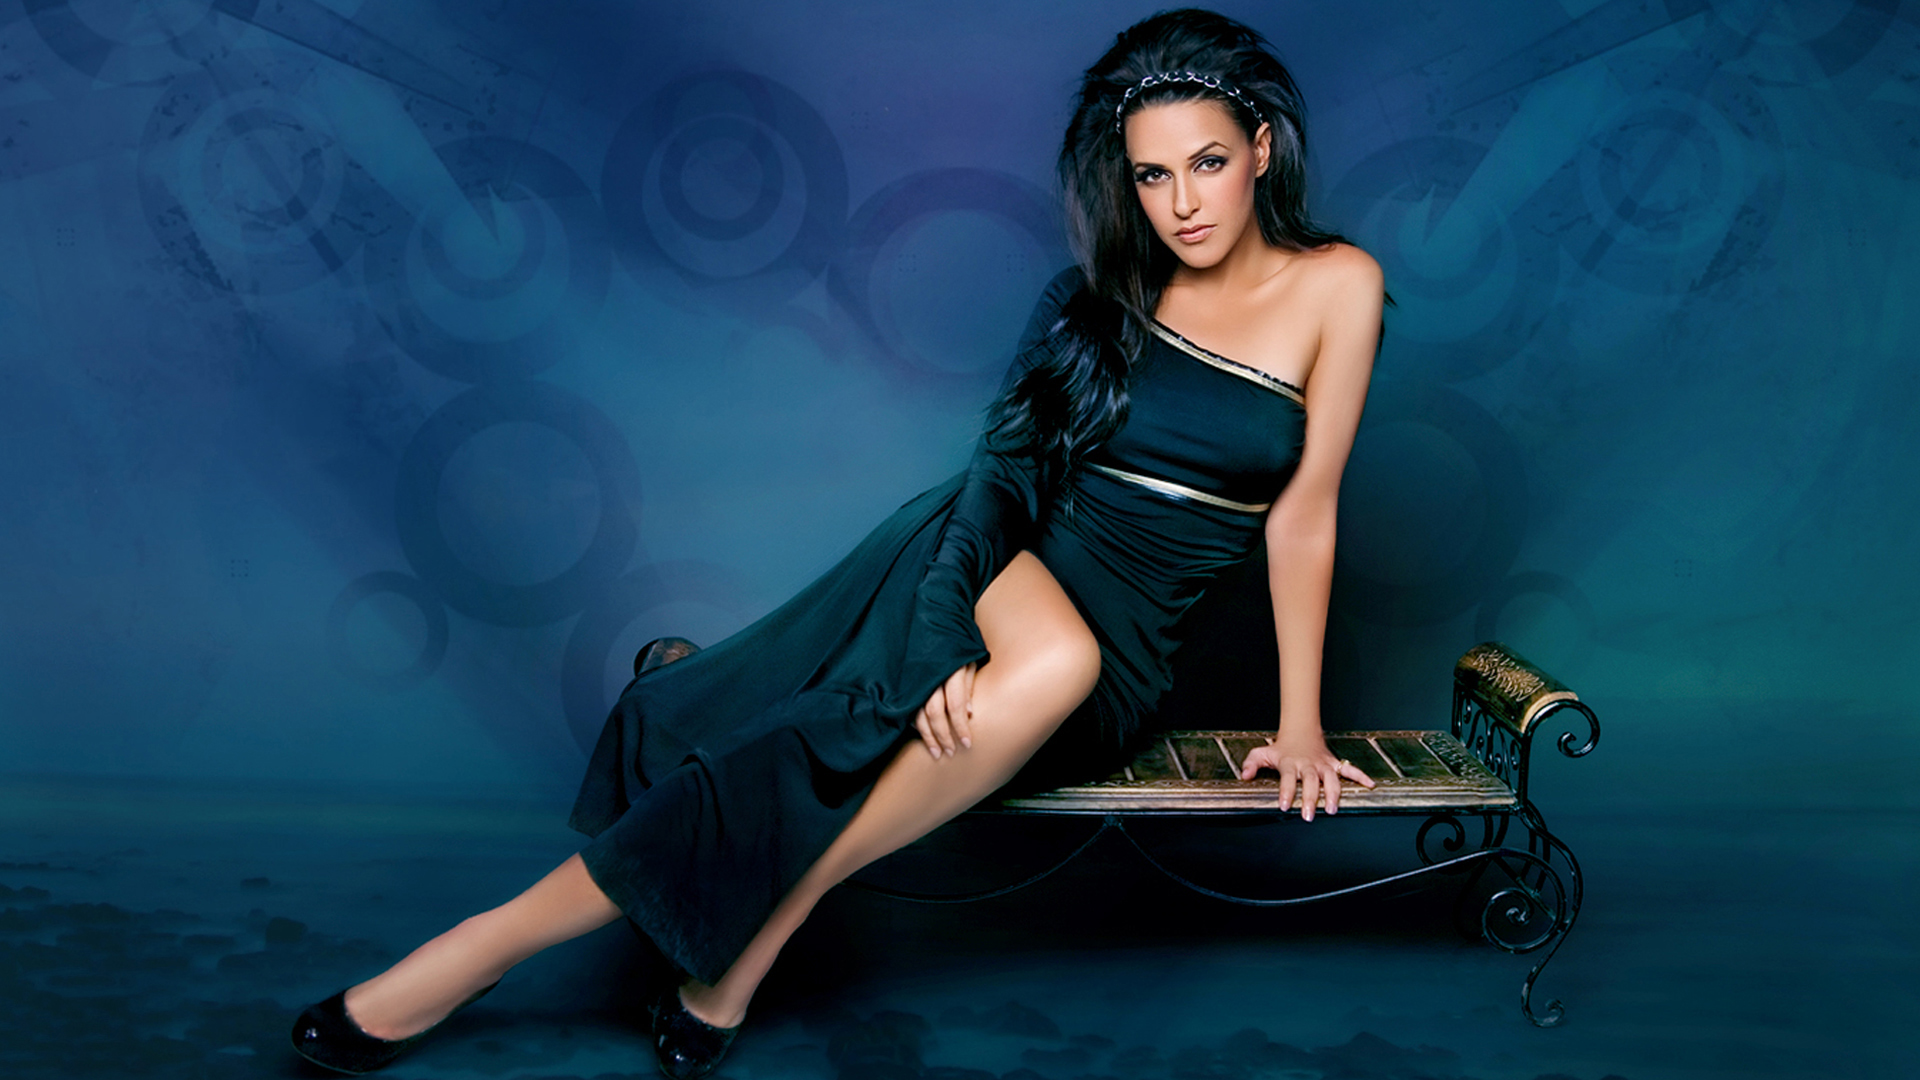 neha dhupia wallpapers hot - photo #36